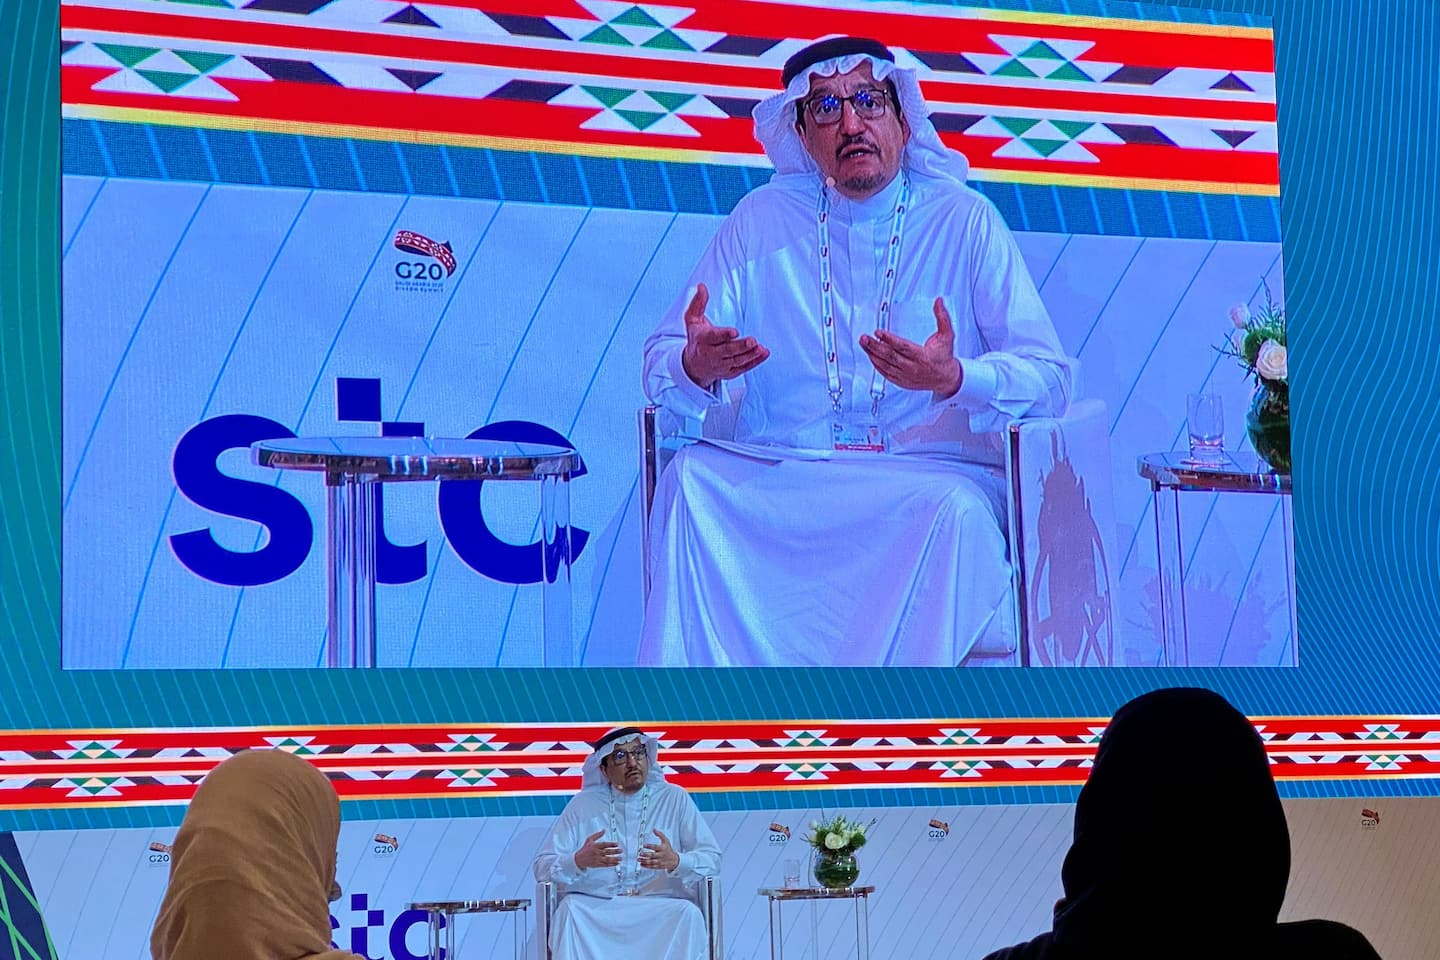 Saudi minister highlights 'huge' strains on global education as G-20 tackles pandemic Photo